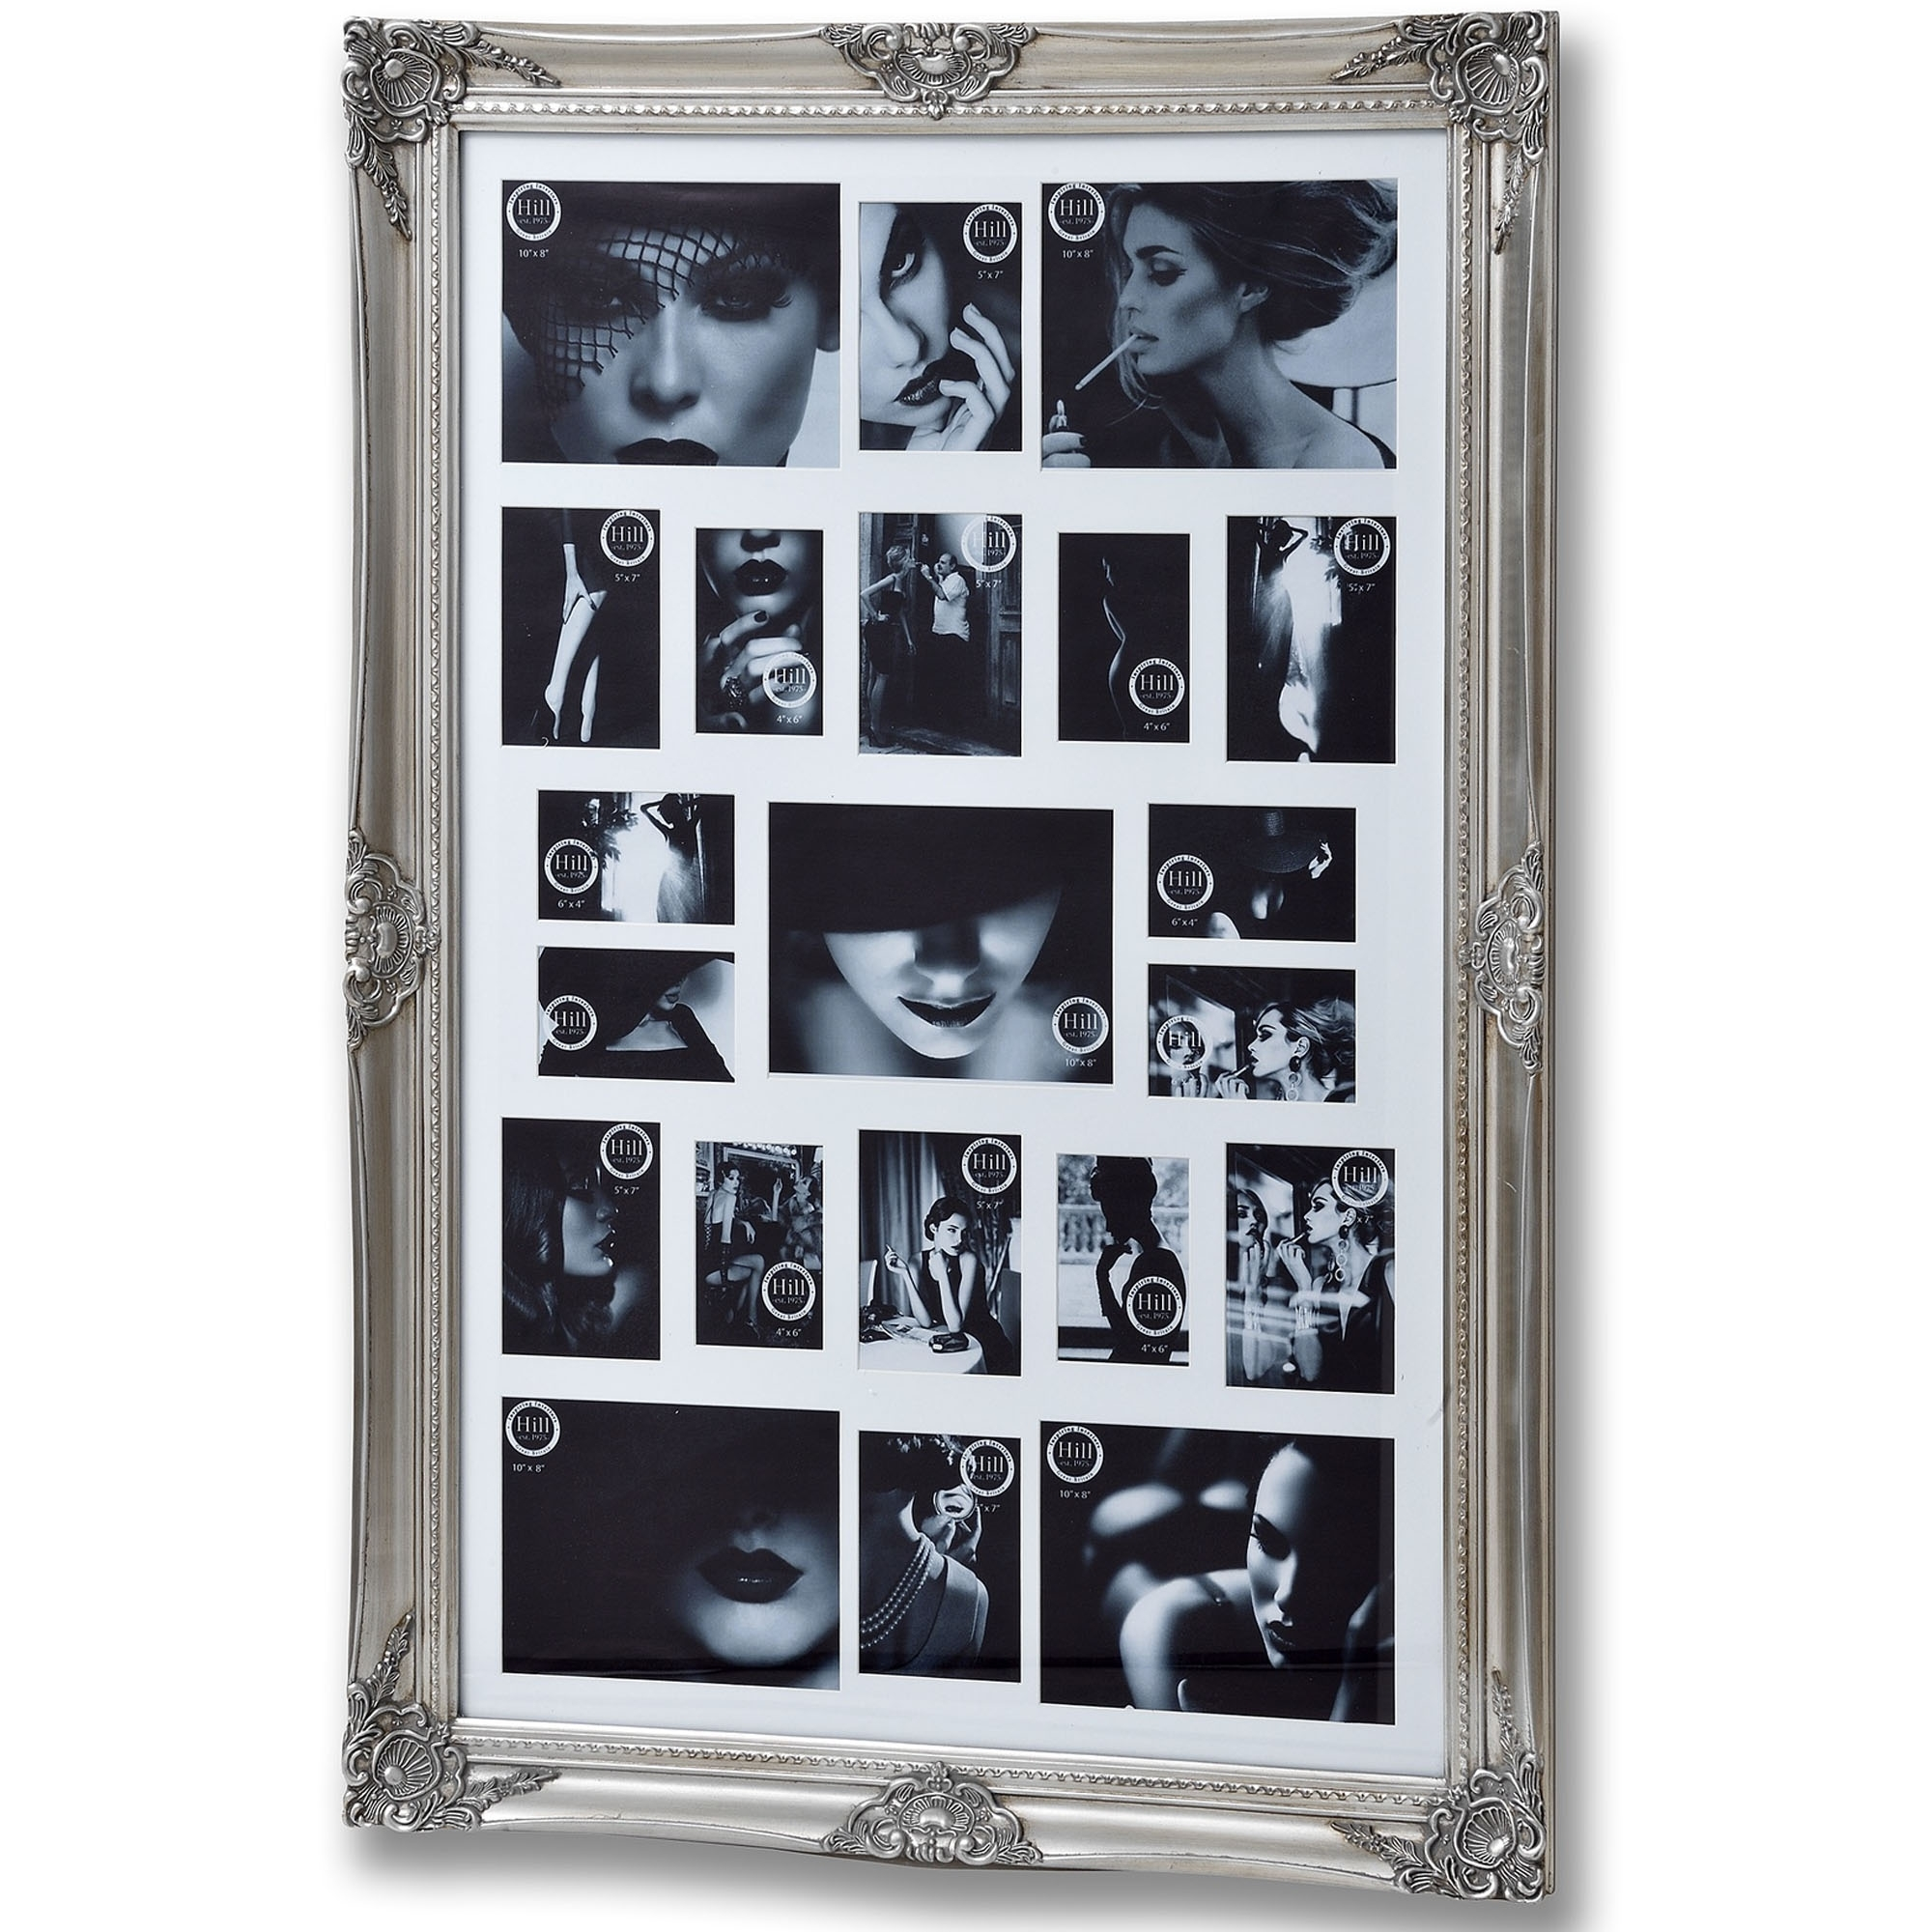 Large Antique Silver Ornate Multi Photo Frame | Antique Photo Frames